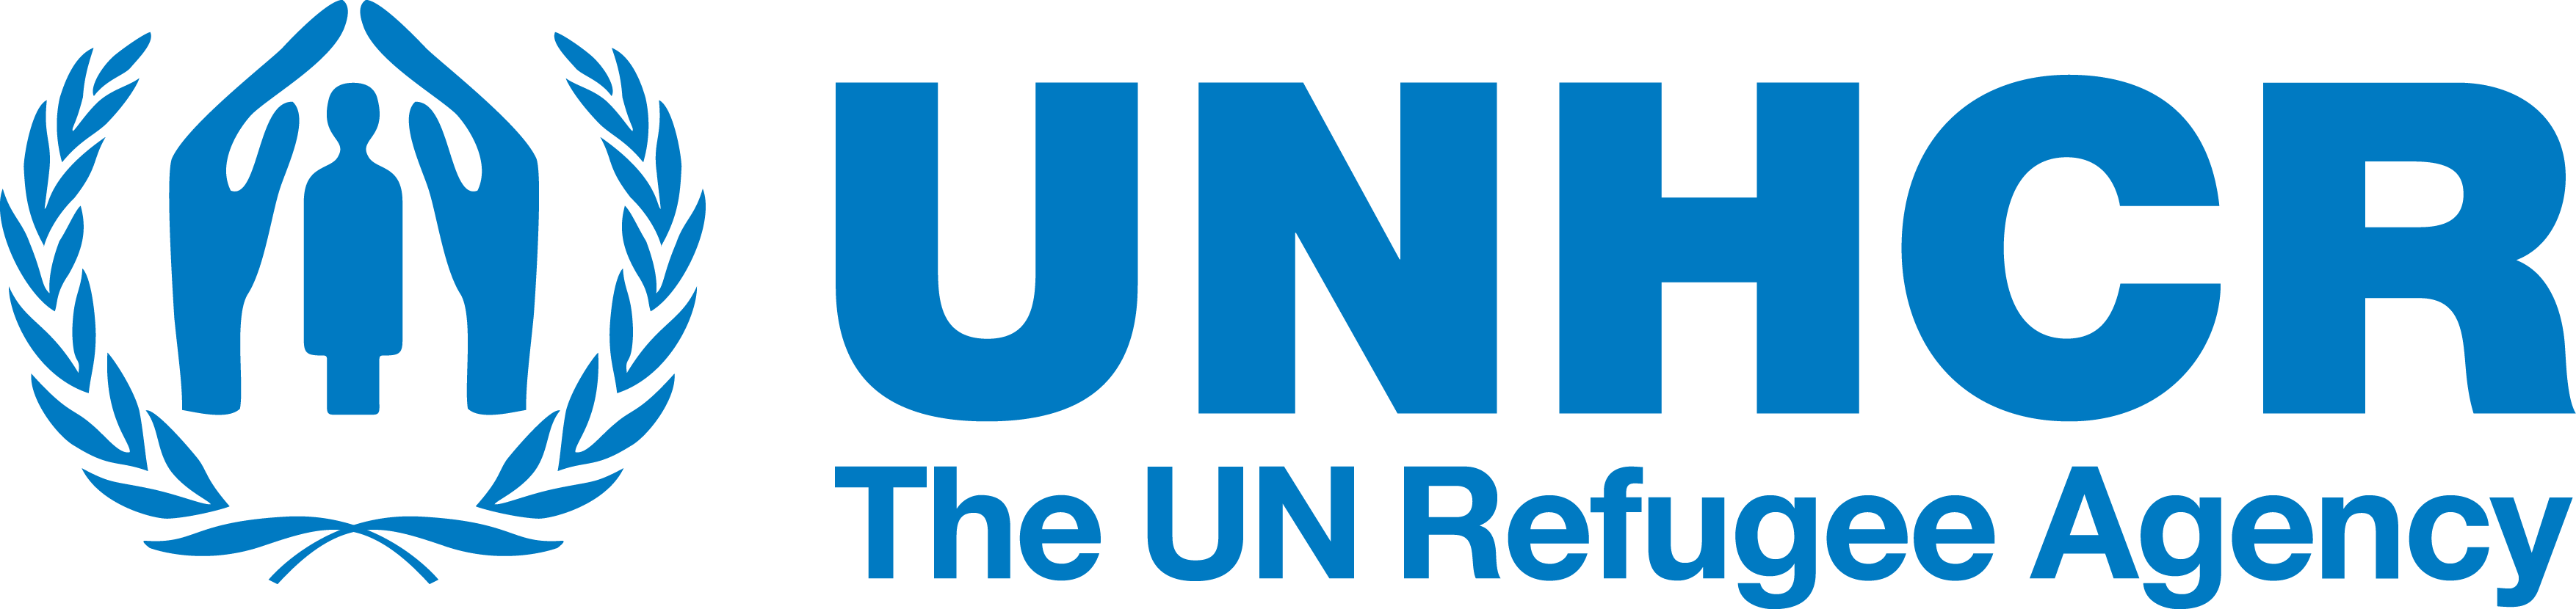 UNHCR Logo (United Nations High Commissioner for Refugees) png